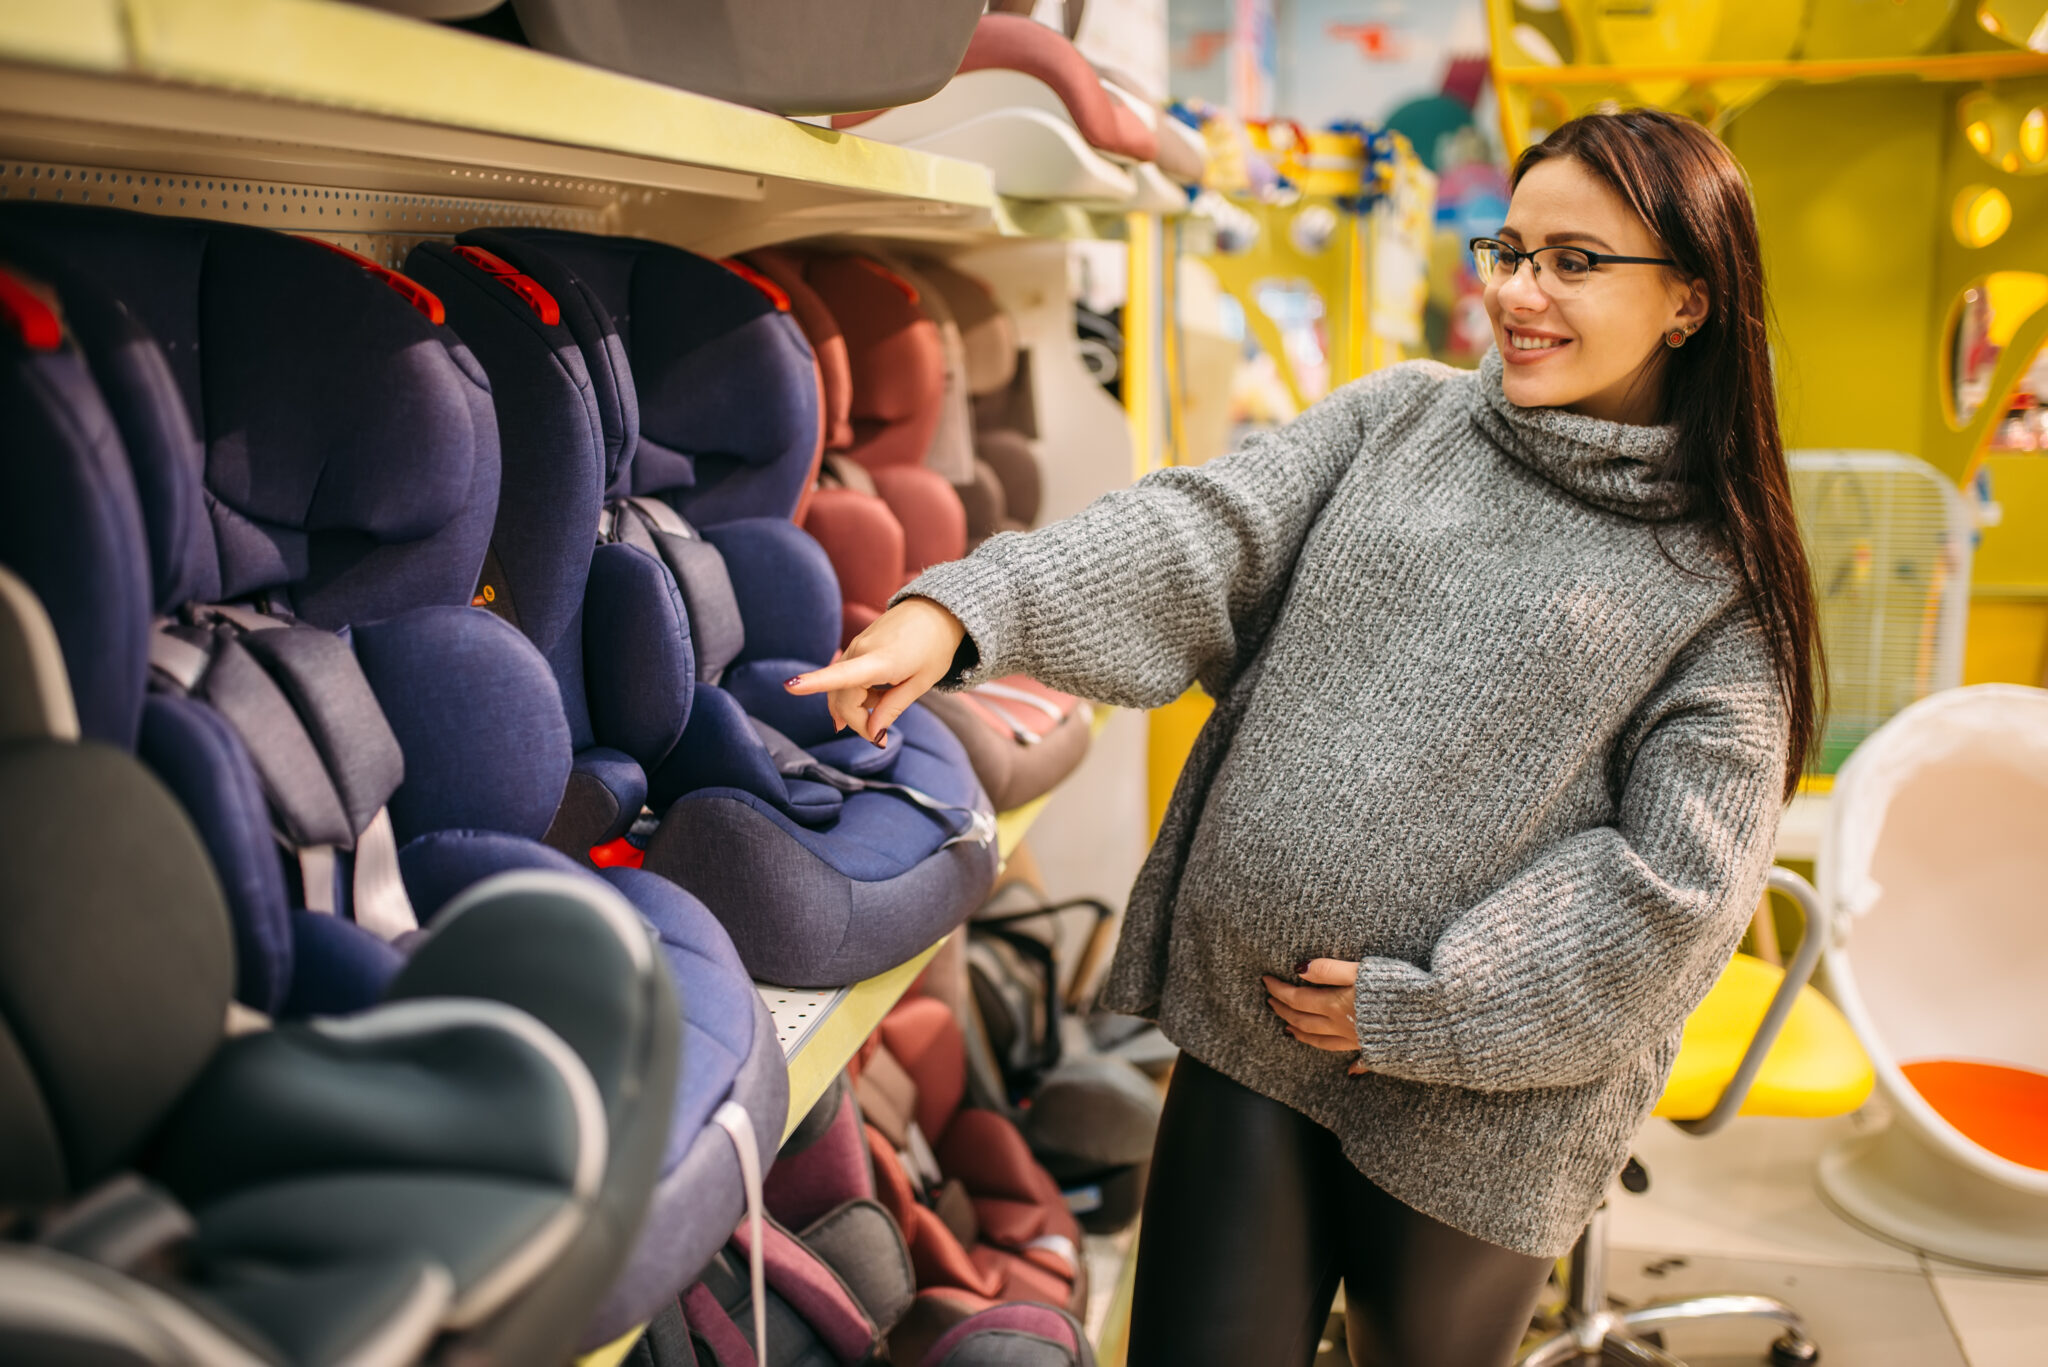 Pregnant woman choosing child car seat in store. Goods for safe children transportation